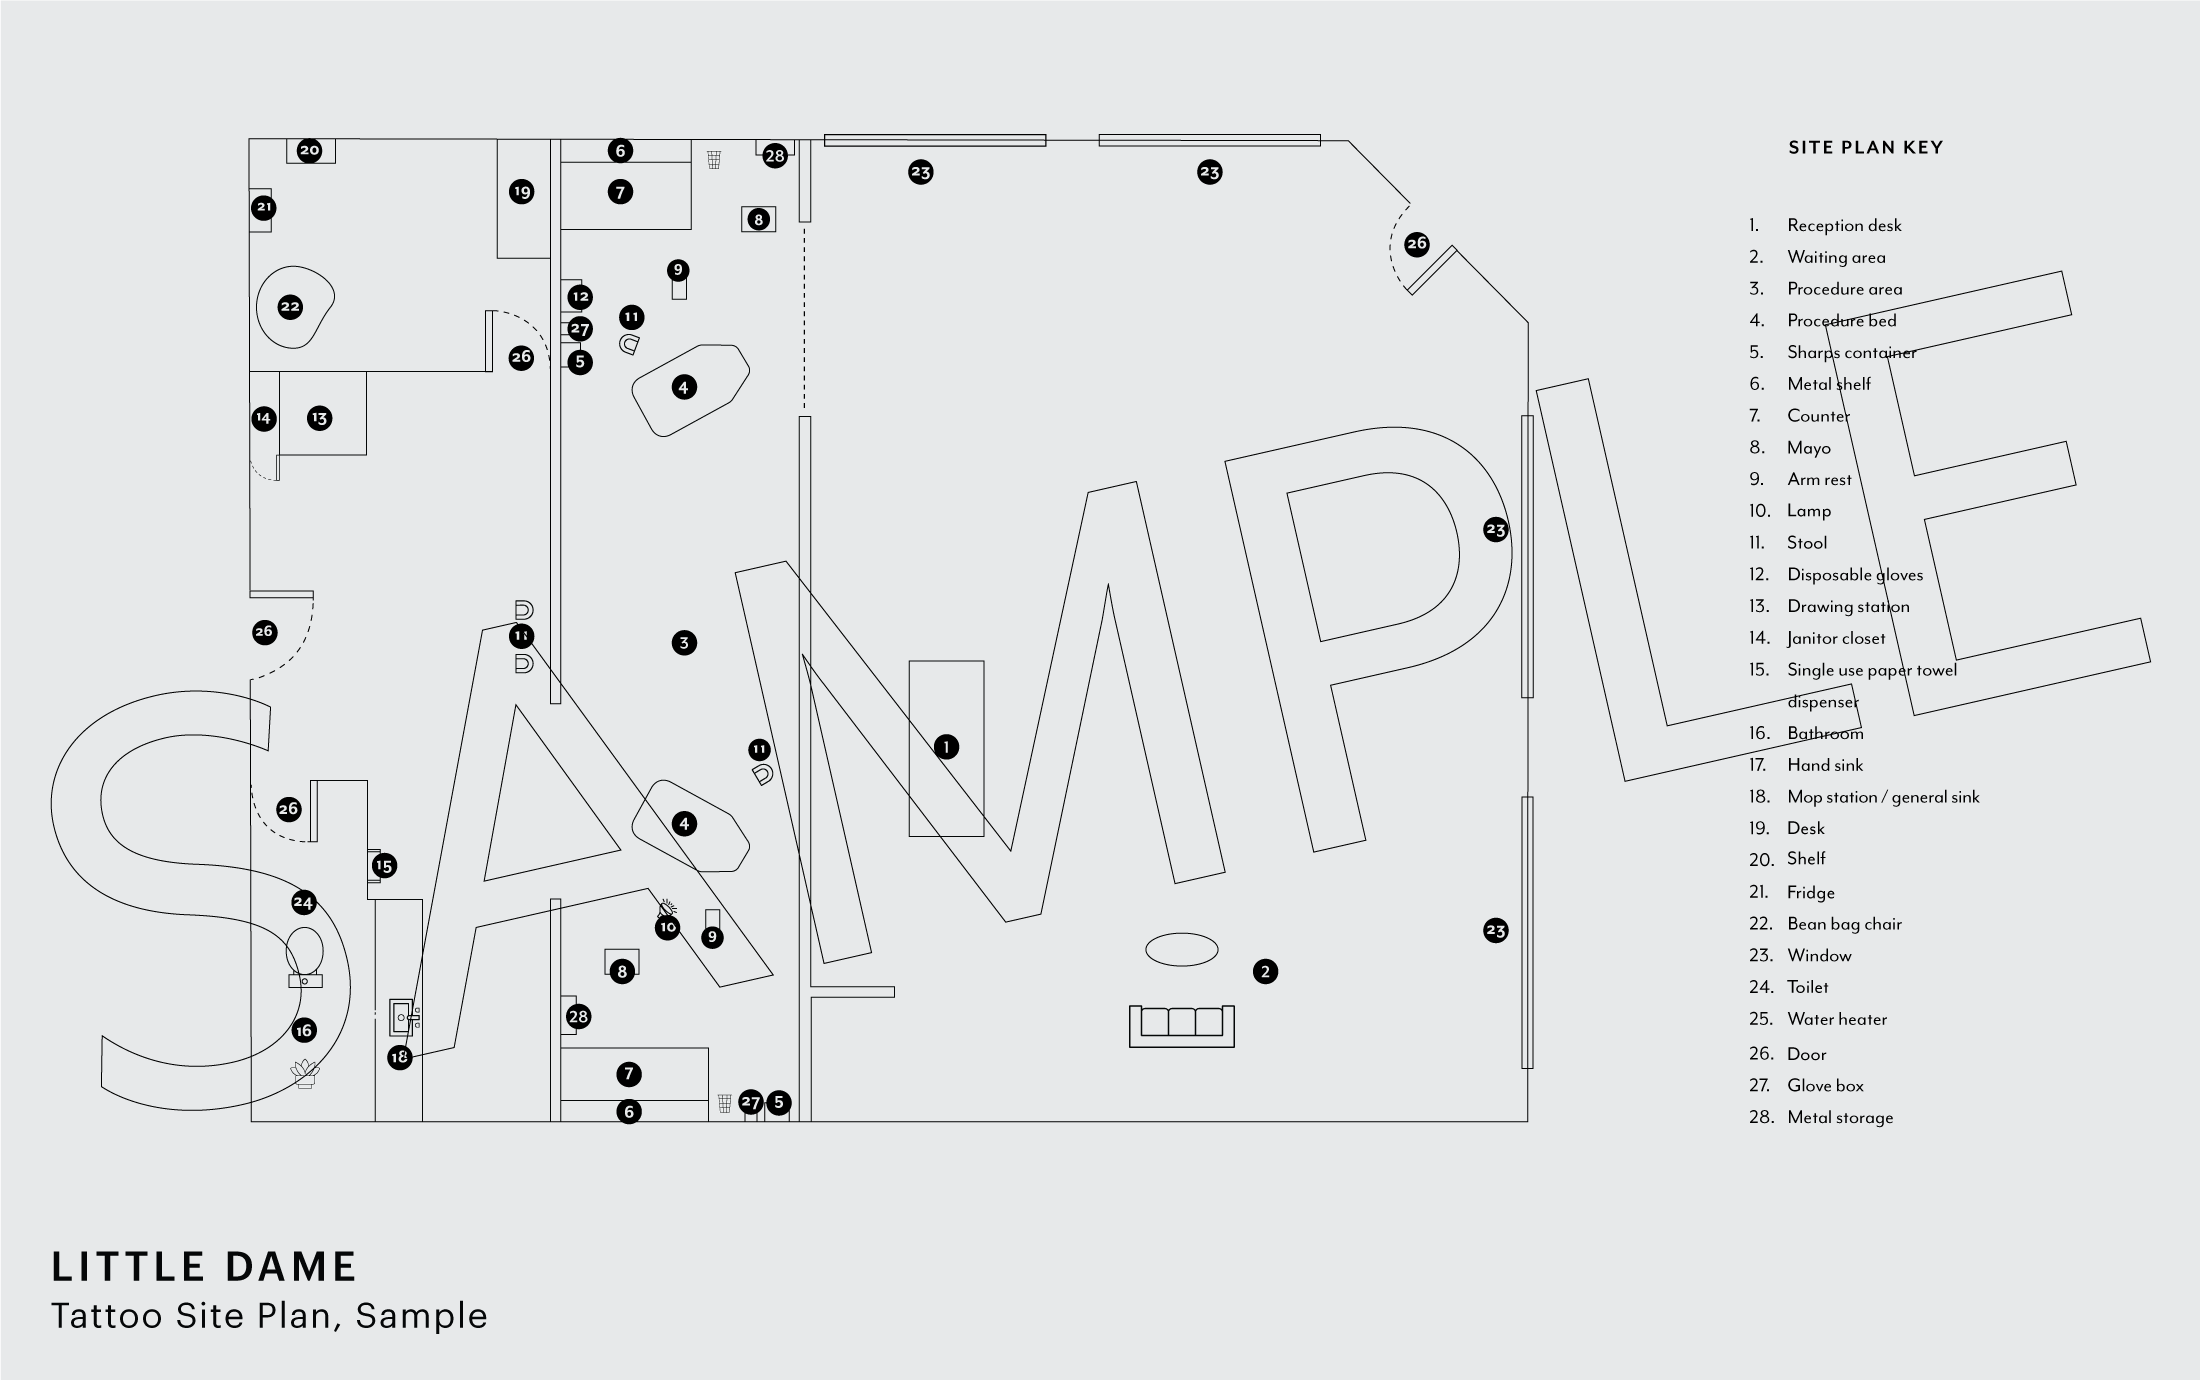 Site Plan for Tattoo Portion of the Business